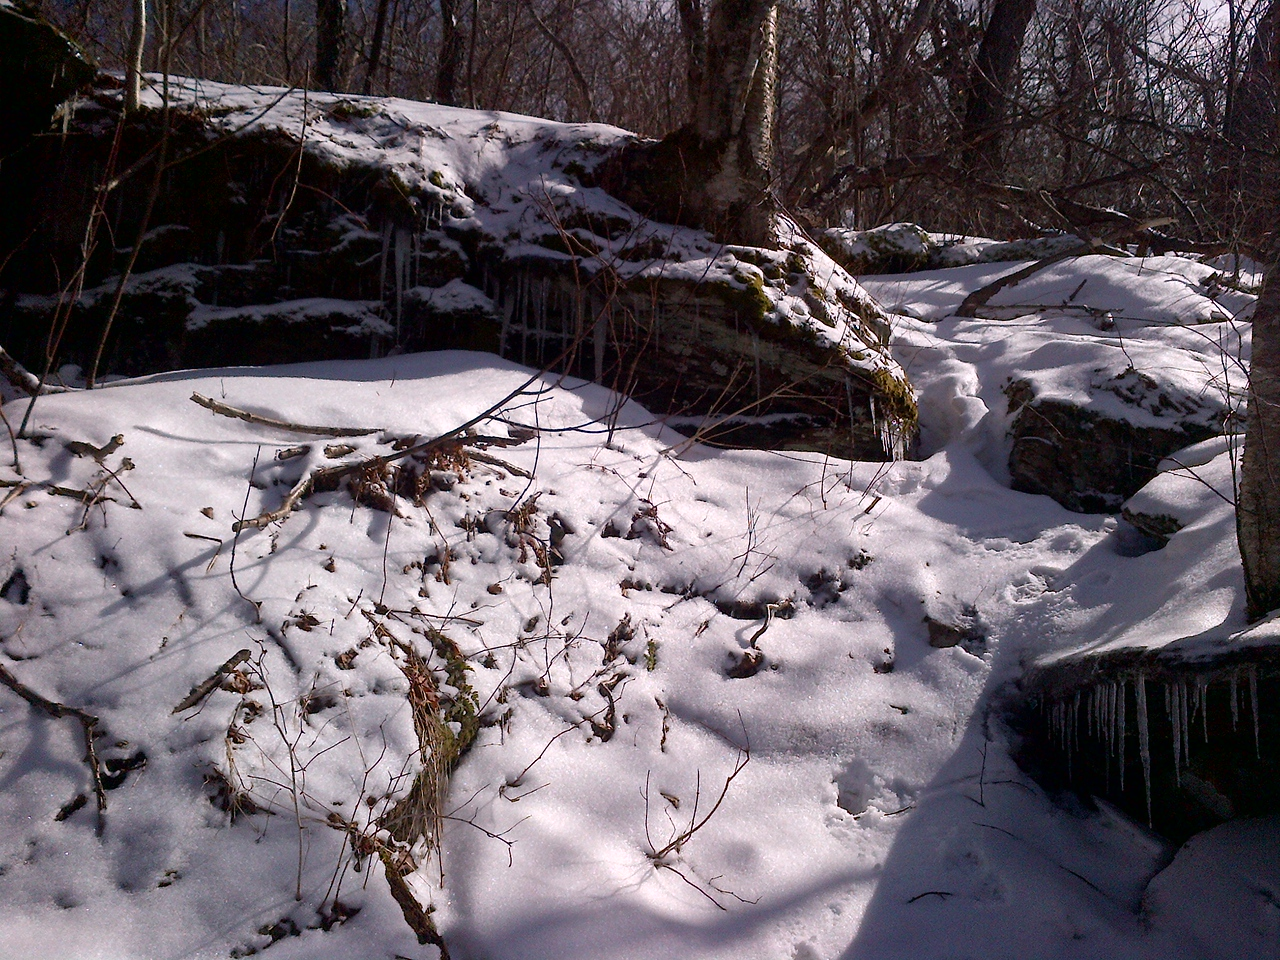 One final icy creek to manage.